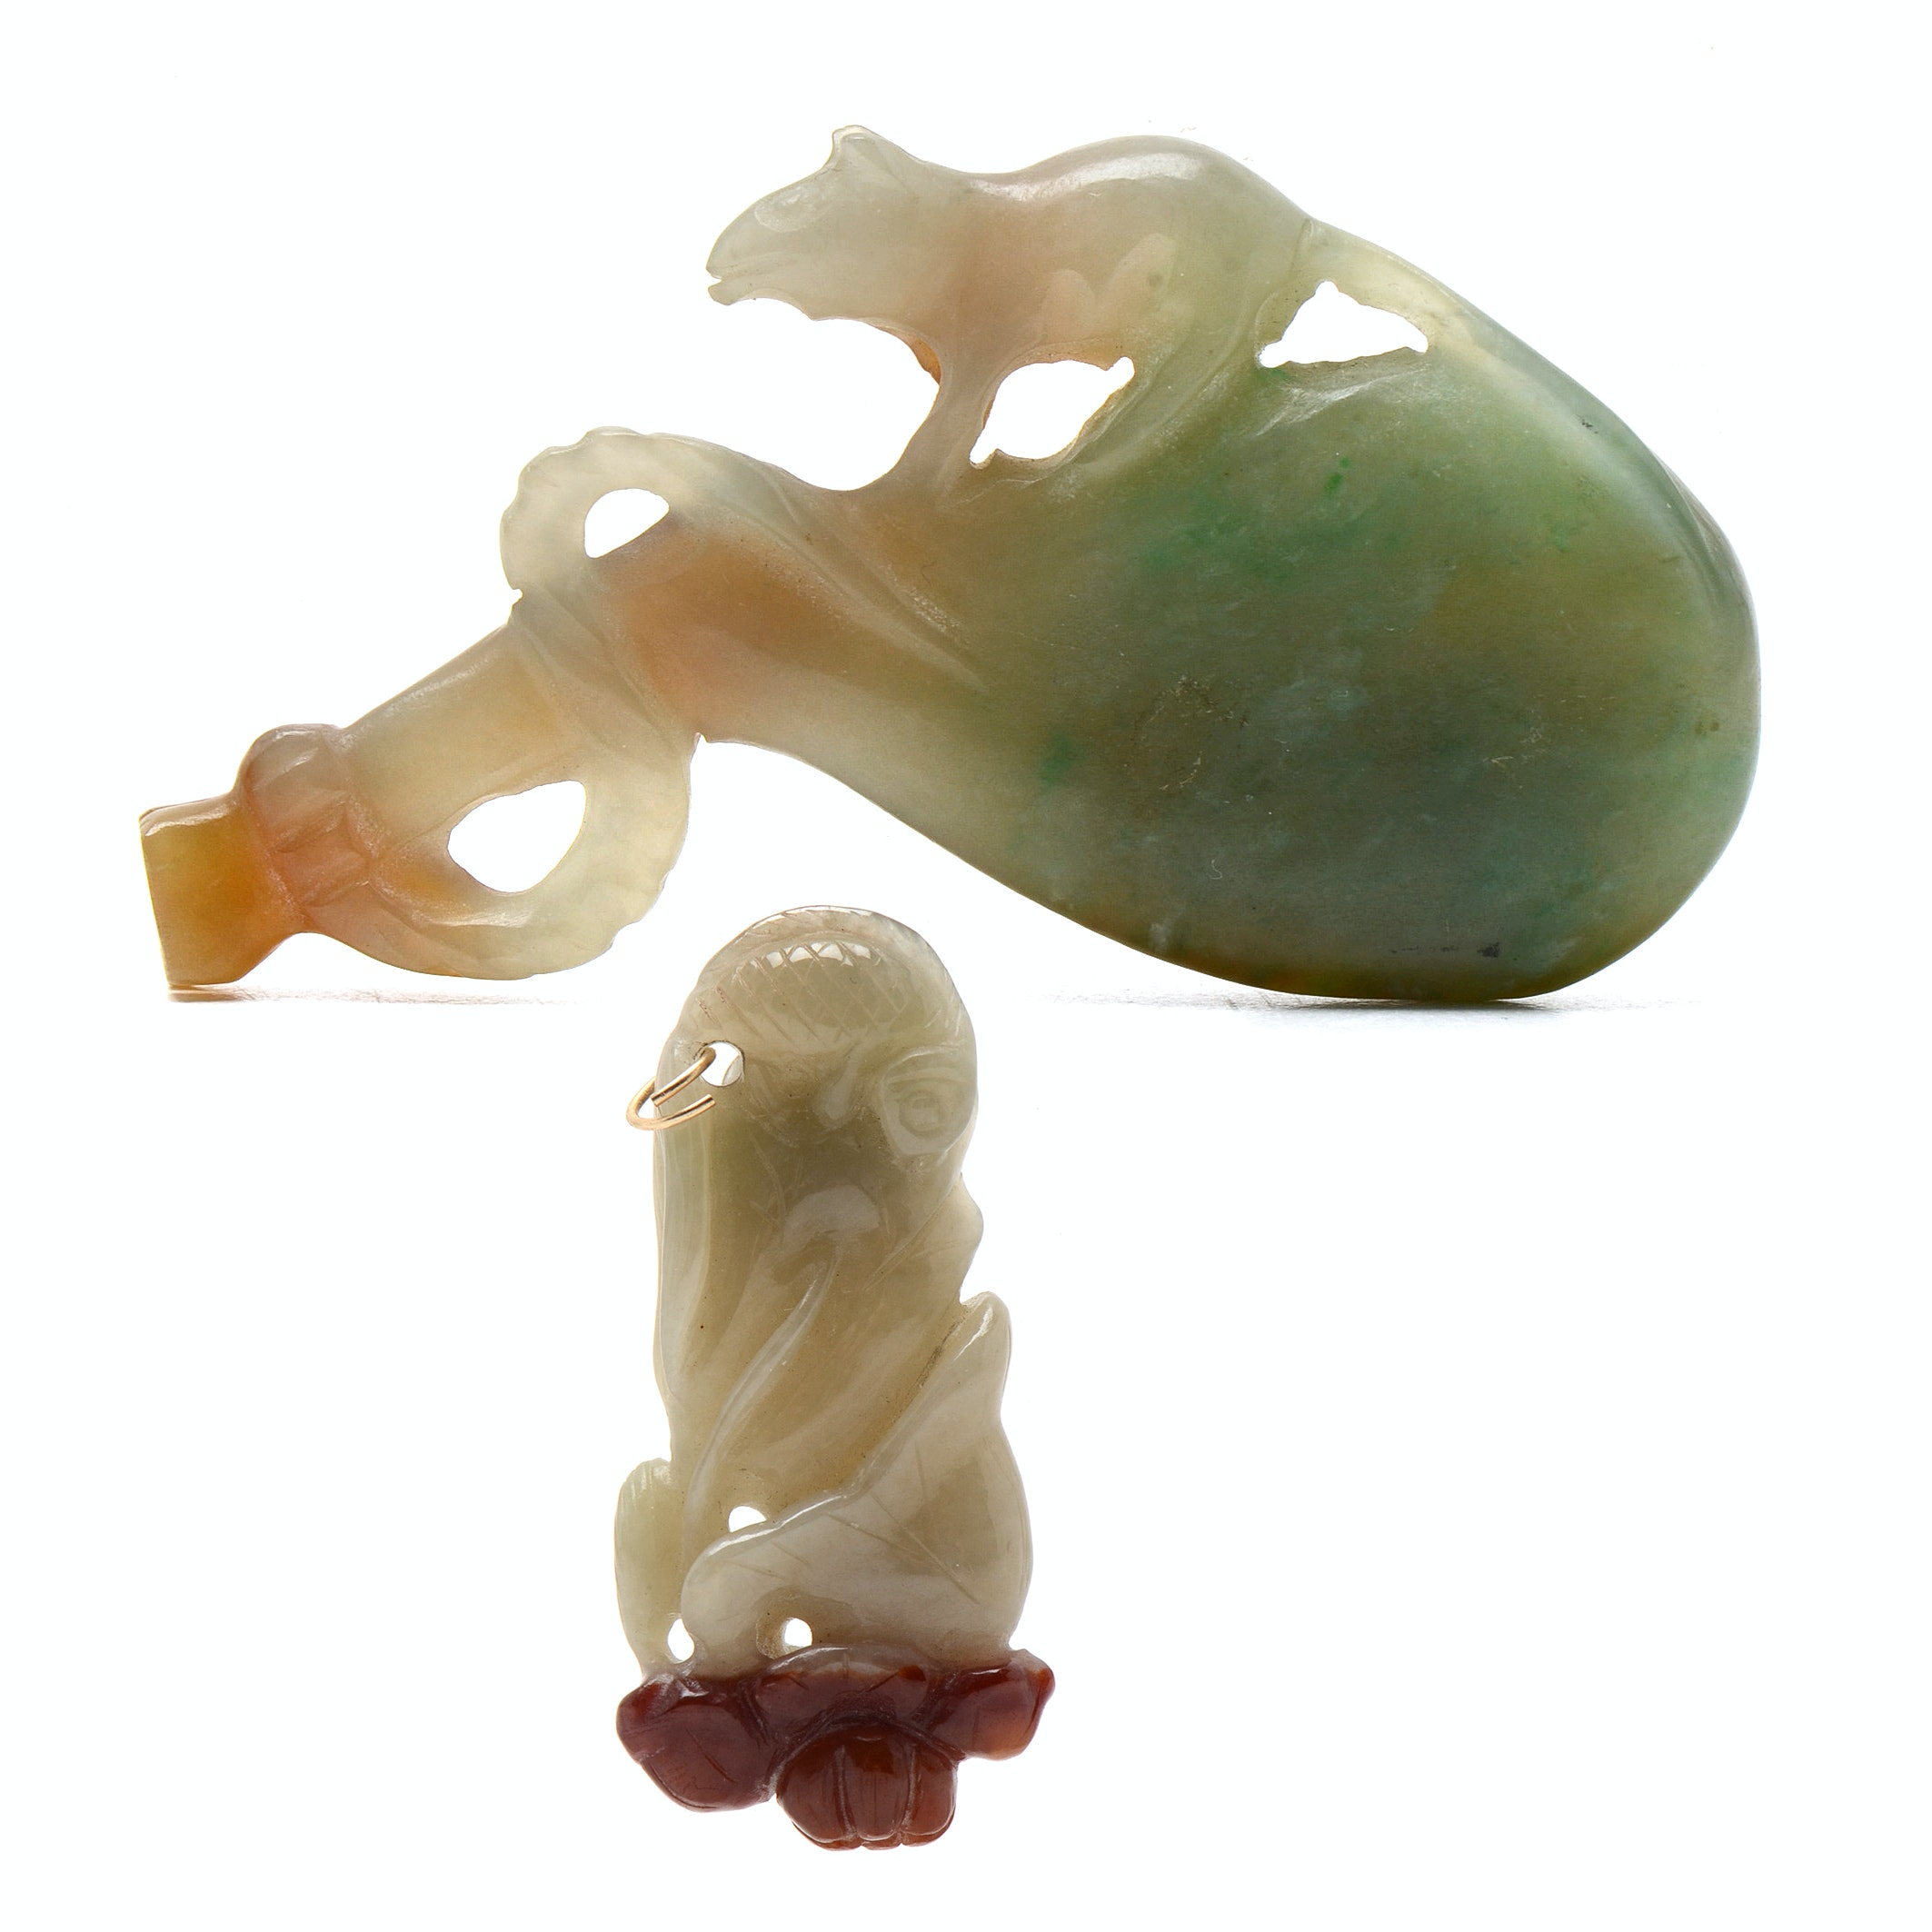 Pairing of Chinese Carved Jadeite Talismans